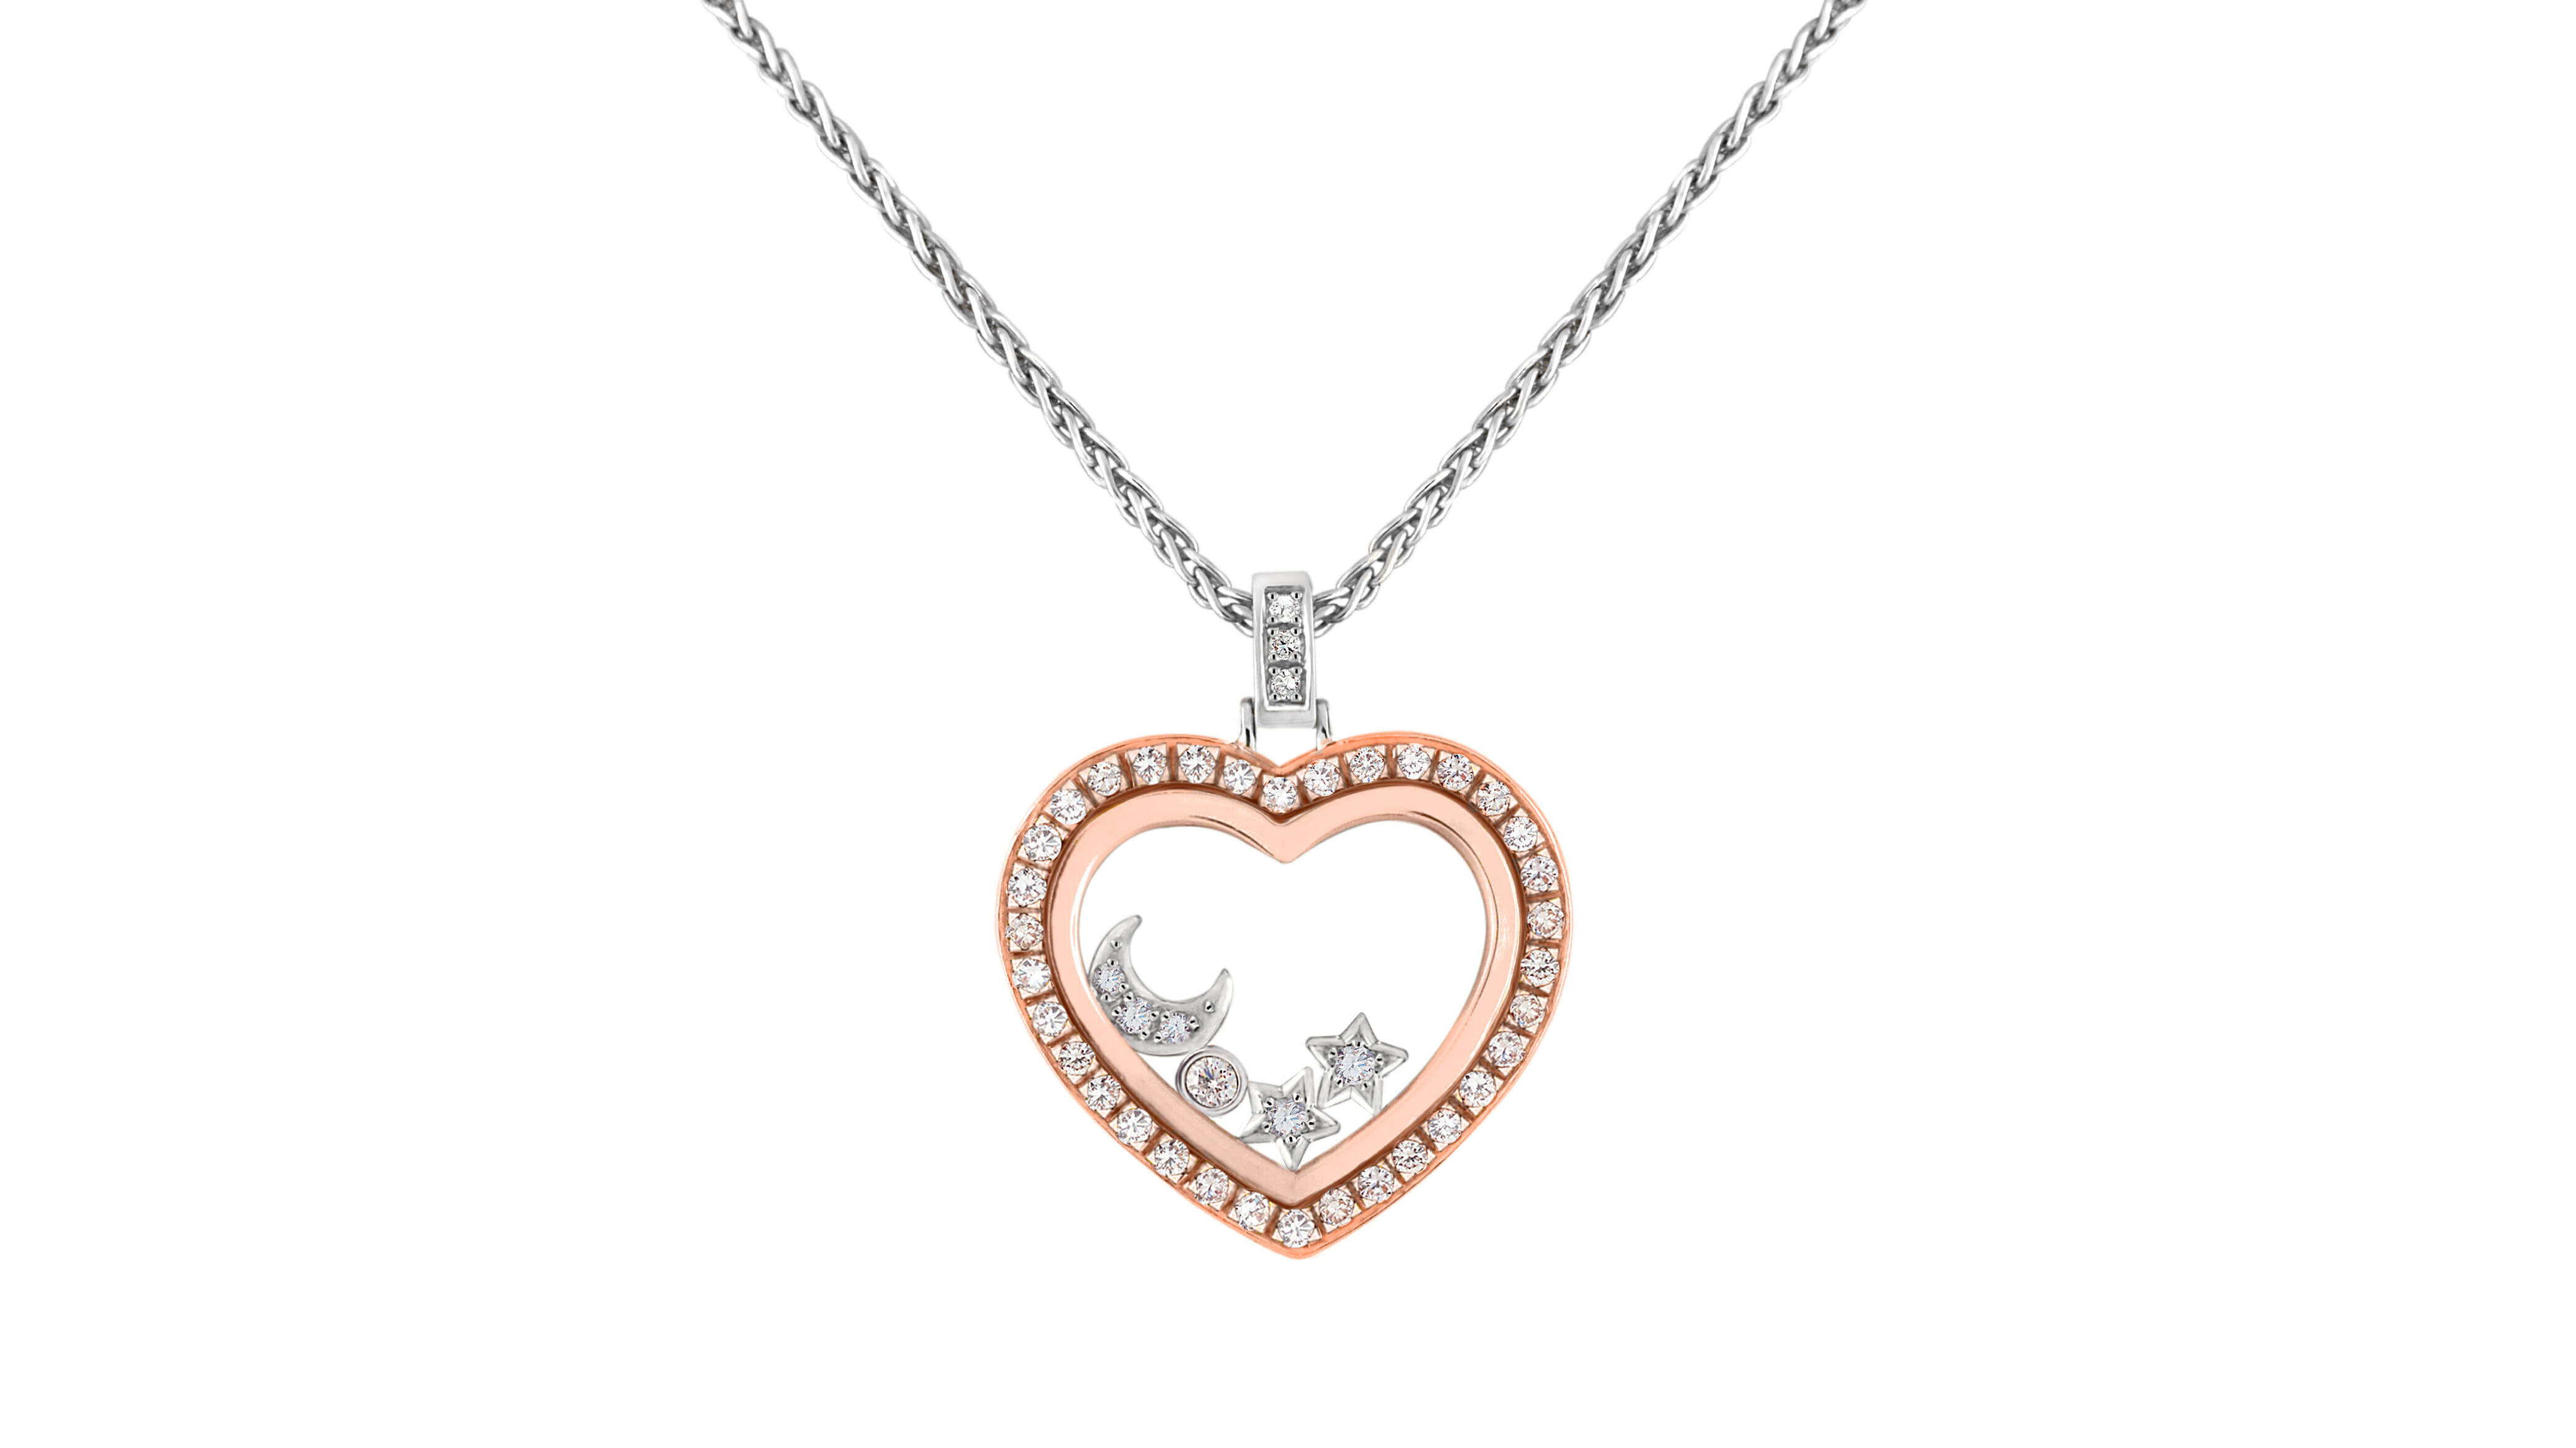 Enchanted Diamond Starry Night Pendant | Rose gold enchanted diamond halo heart pendant, with white gold moon and star diamond charms encased in crystal. Surrounded by a halo of diamonds.